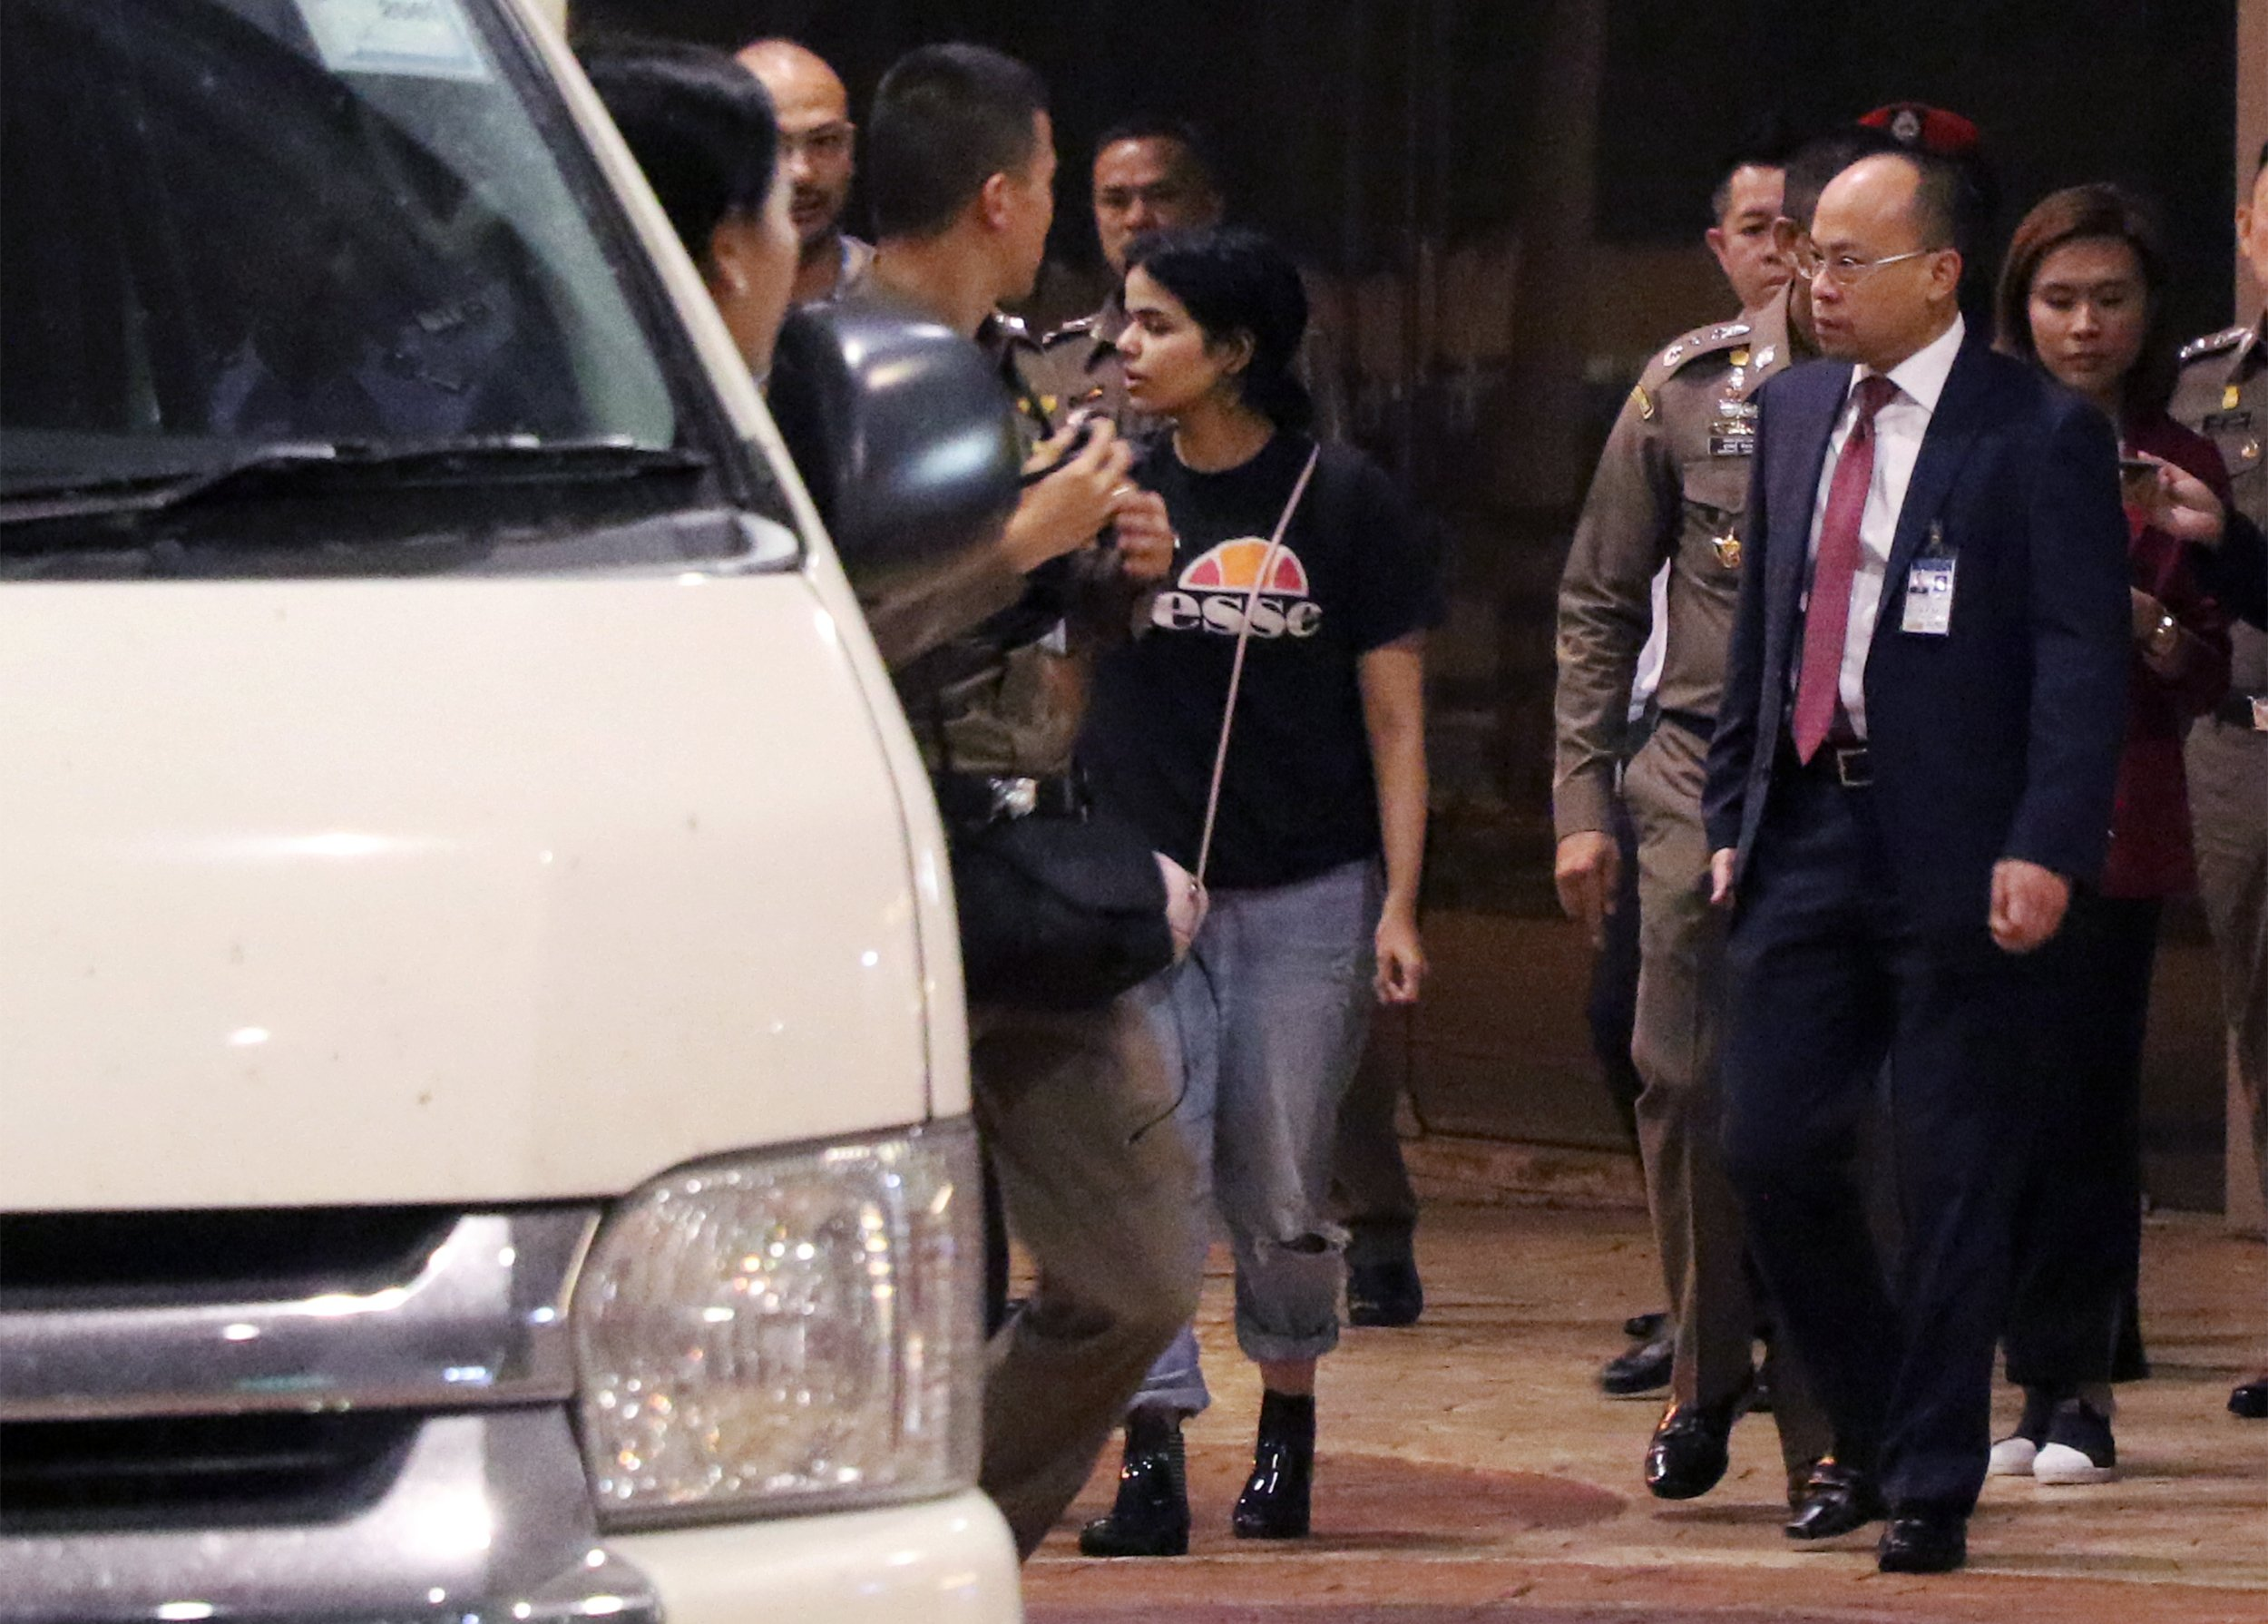 18-year-old Saudi woman Rahaf Mohammed al-Qanun (C) is escorted to a vehicle by the Thai immigration officer and United Nations High Commissioner for Refugees (UNHCR) officials at the Suvarnabhumi international airport in Bangkok on January 7, 2019. (AFP/Getty Images)